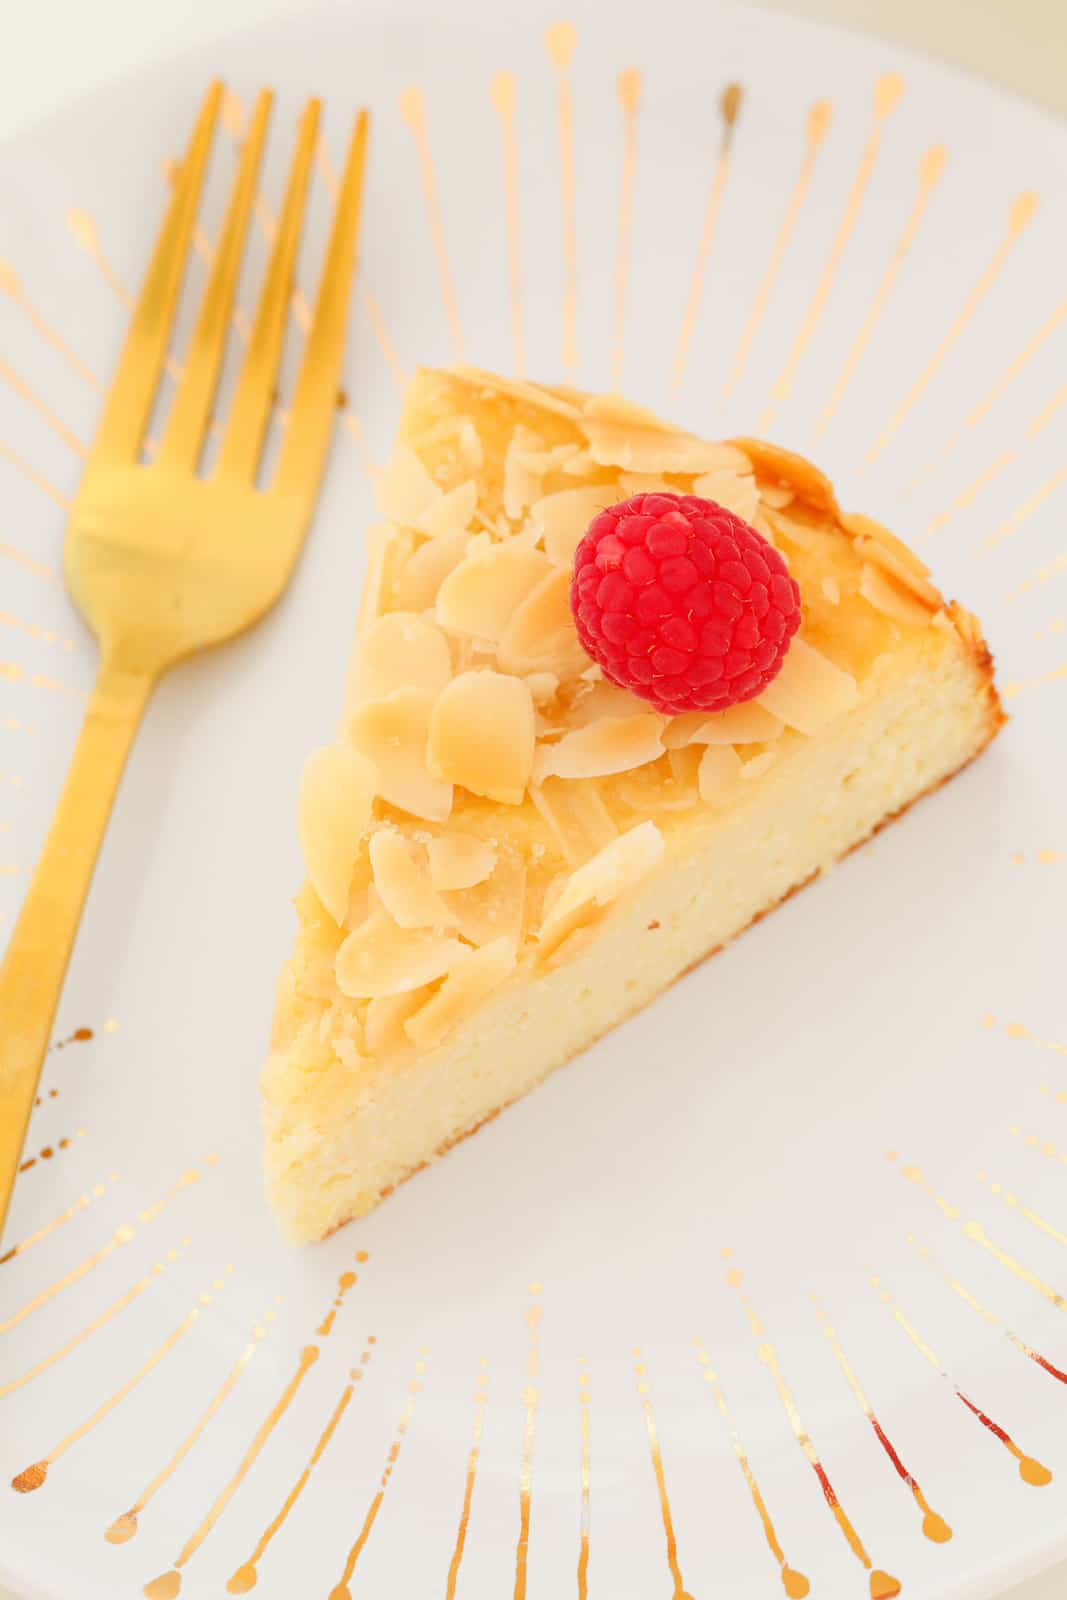 Overhead shot of a serve of lemon and ricotta cake on a white plate with a gold fork